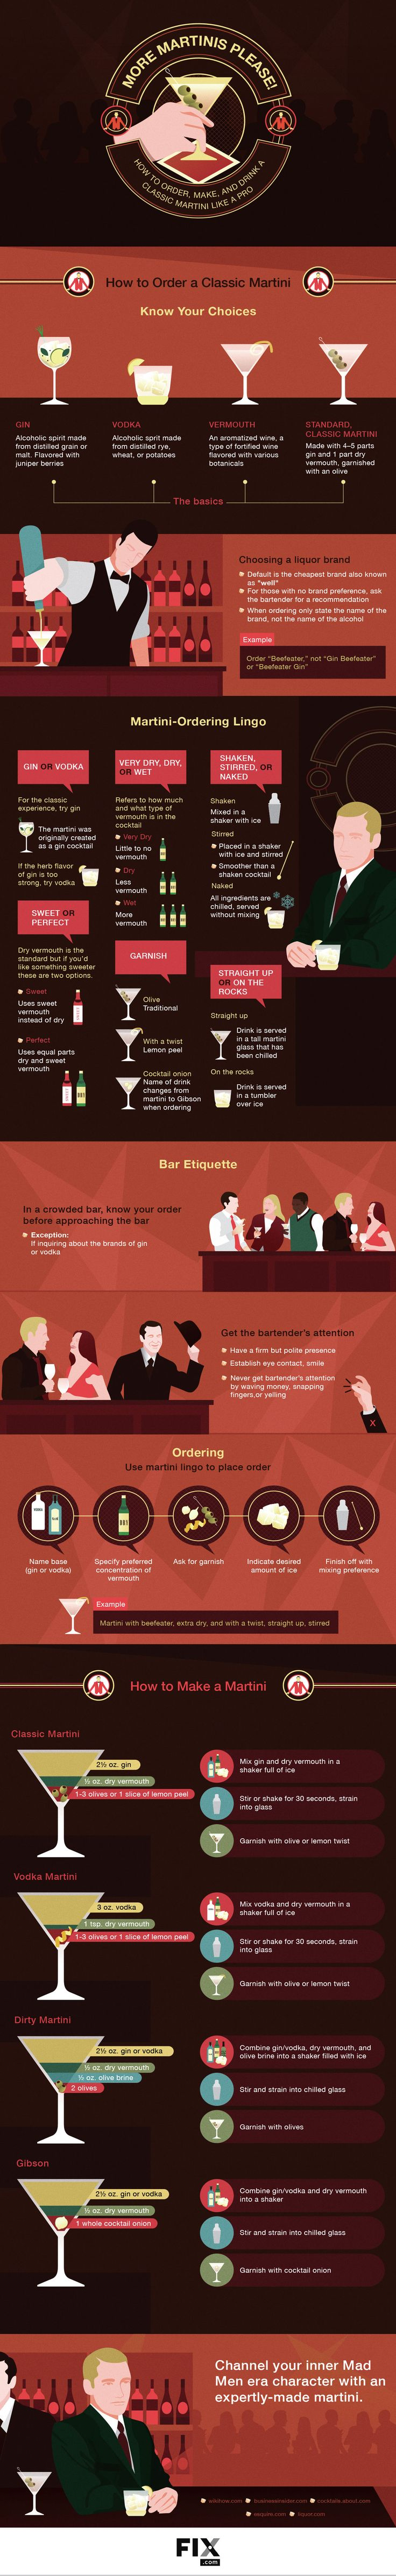 Learn to order, make, and drink martinis like a pro with this complete guide to cocktail etiquette #shakennotstirred #martinis